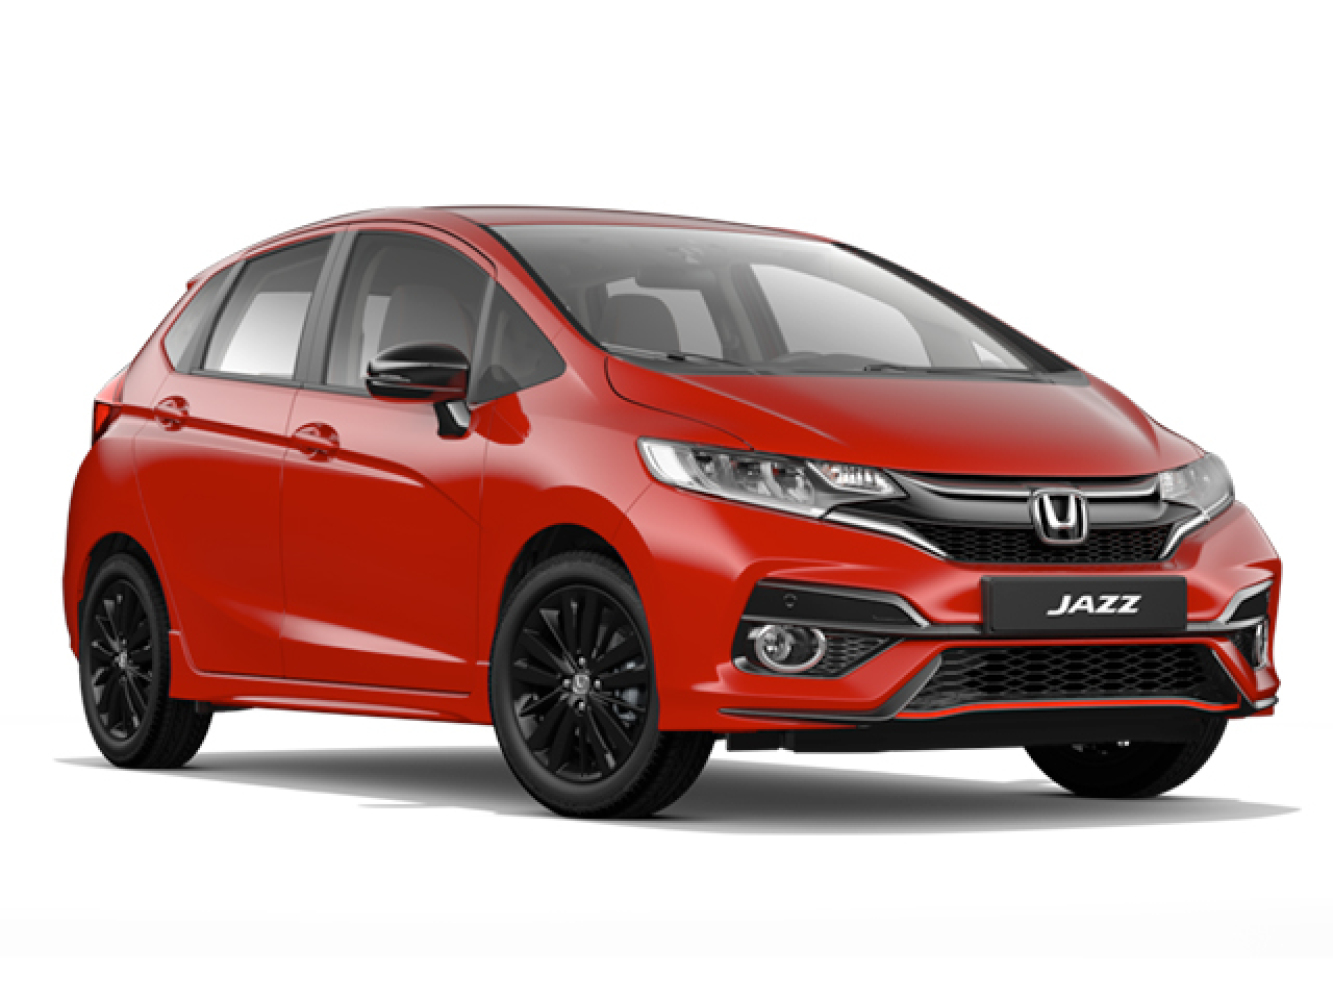 new honda jazz 1 5 i vtec sport navi 5dr petrol hatchback. Black Bedroom Furniture Sets. Home Design Ideas